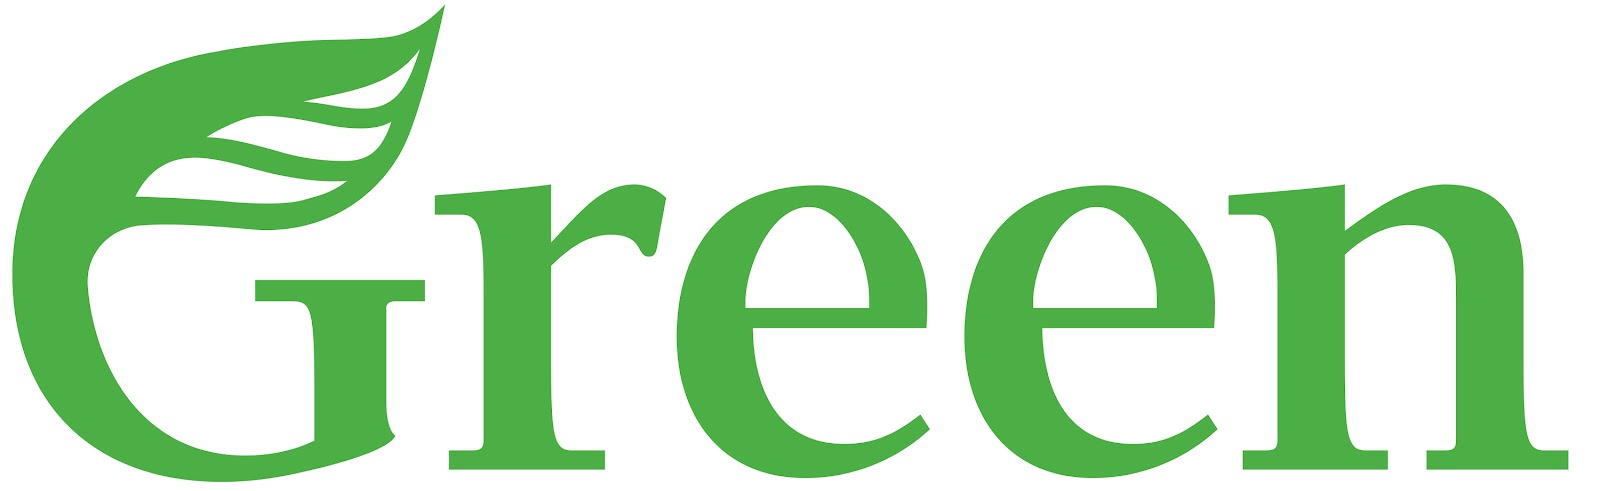 Image result for green party logo